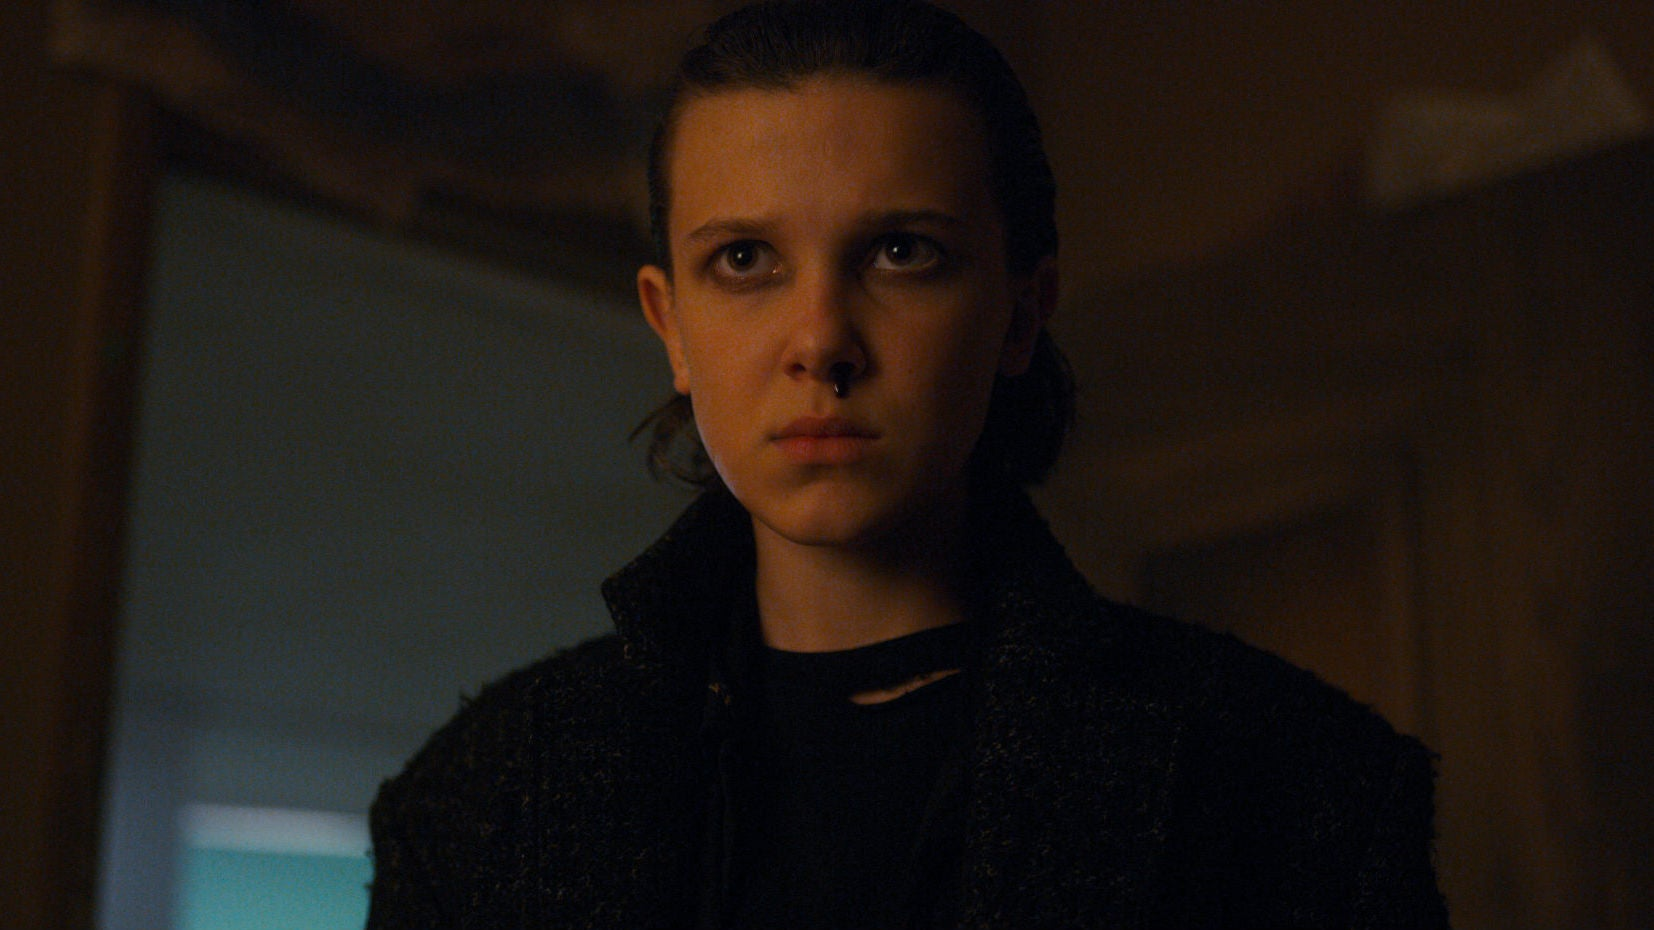 Millie Bobby Brown Just Signed Up For Her Own Sherlock Holmes Franchise